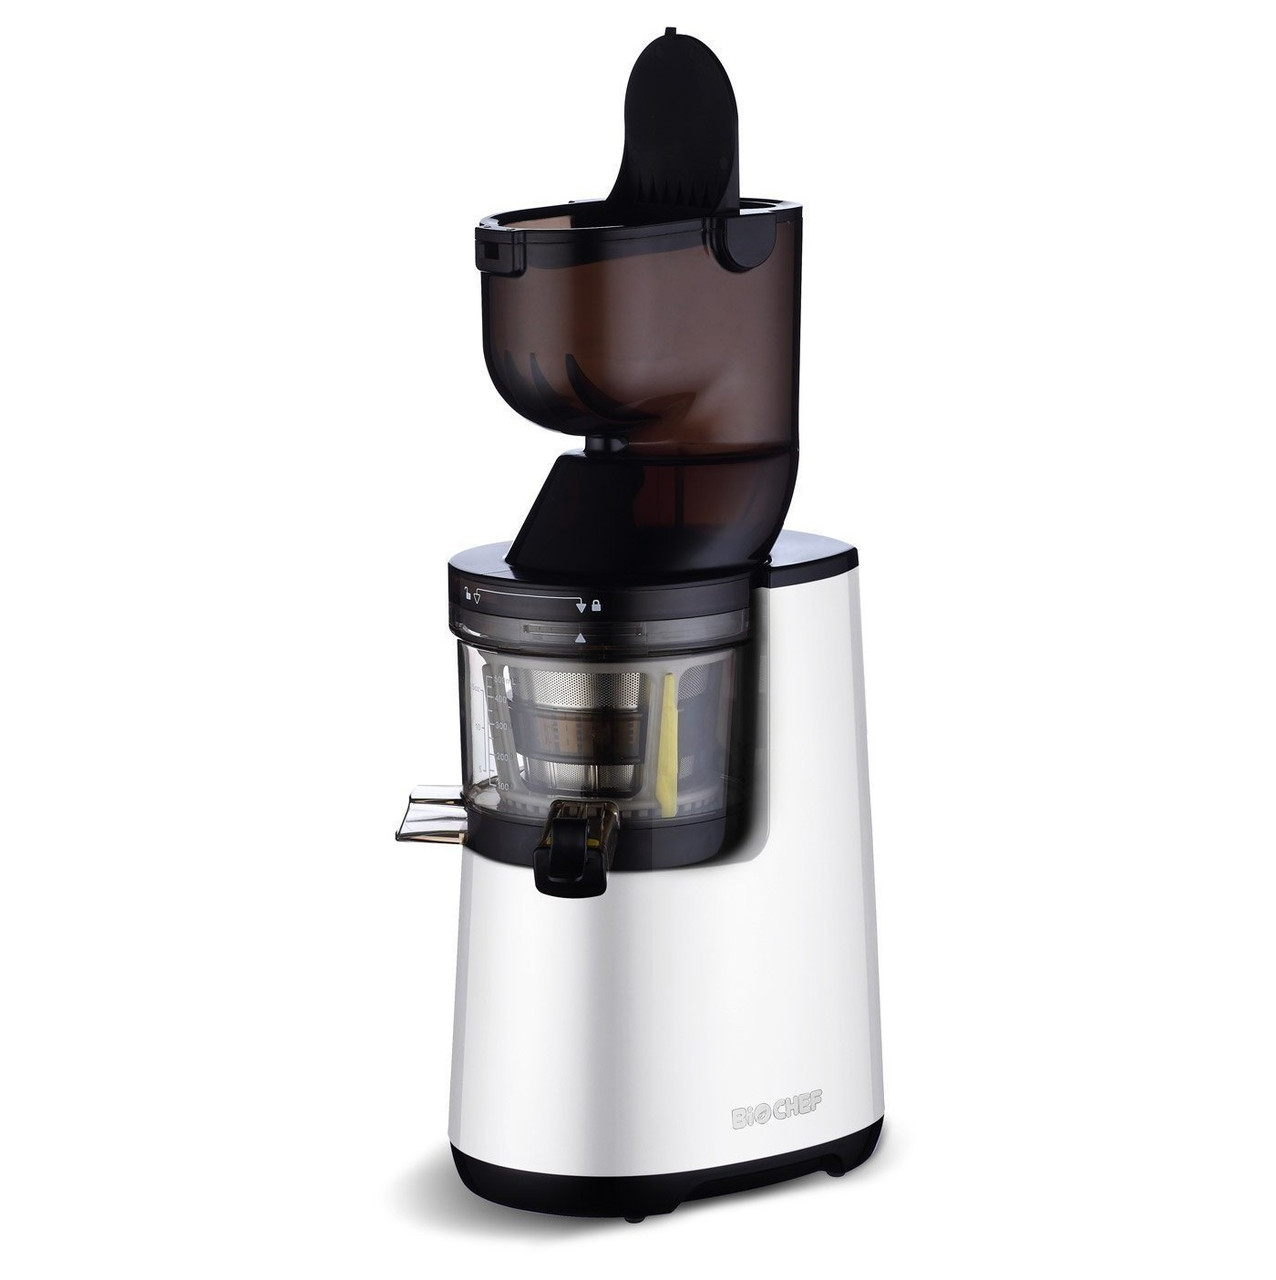 Соковыжималка BioChef Atlas Whole Slow Juicer белая